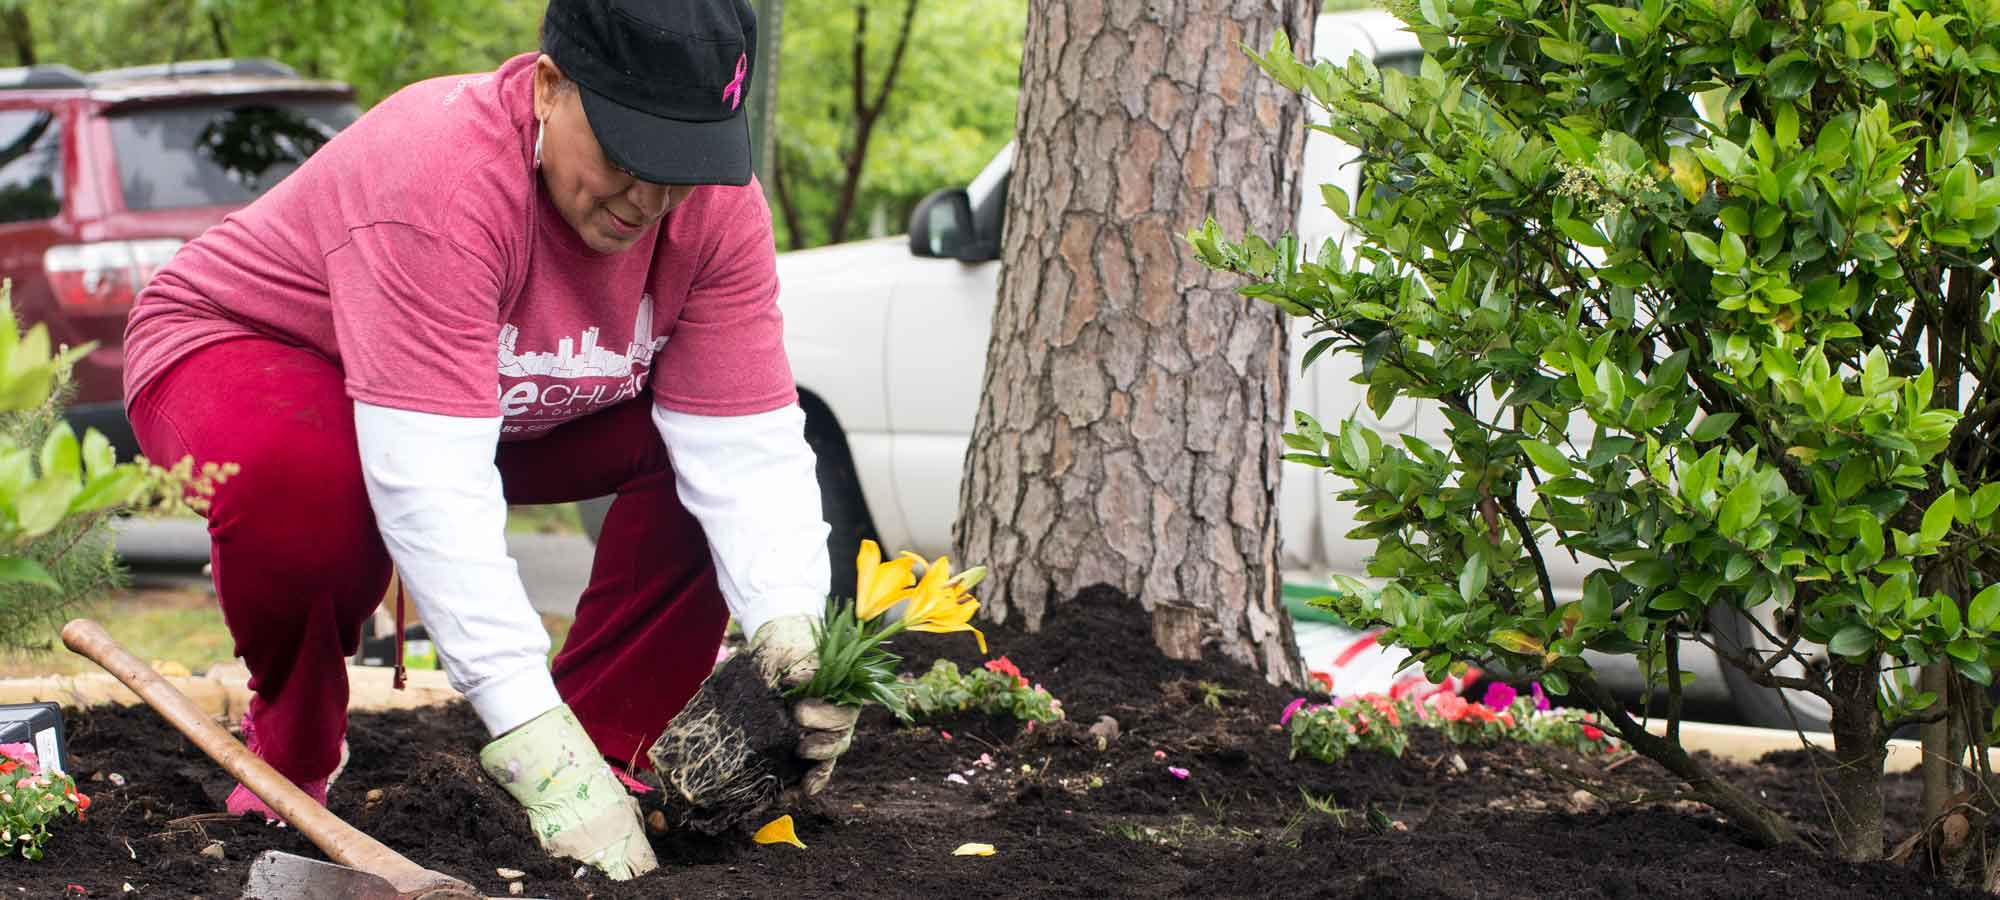 Woman planting flowers in landscaping area